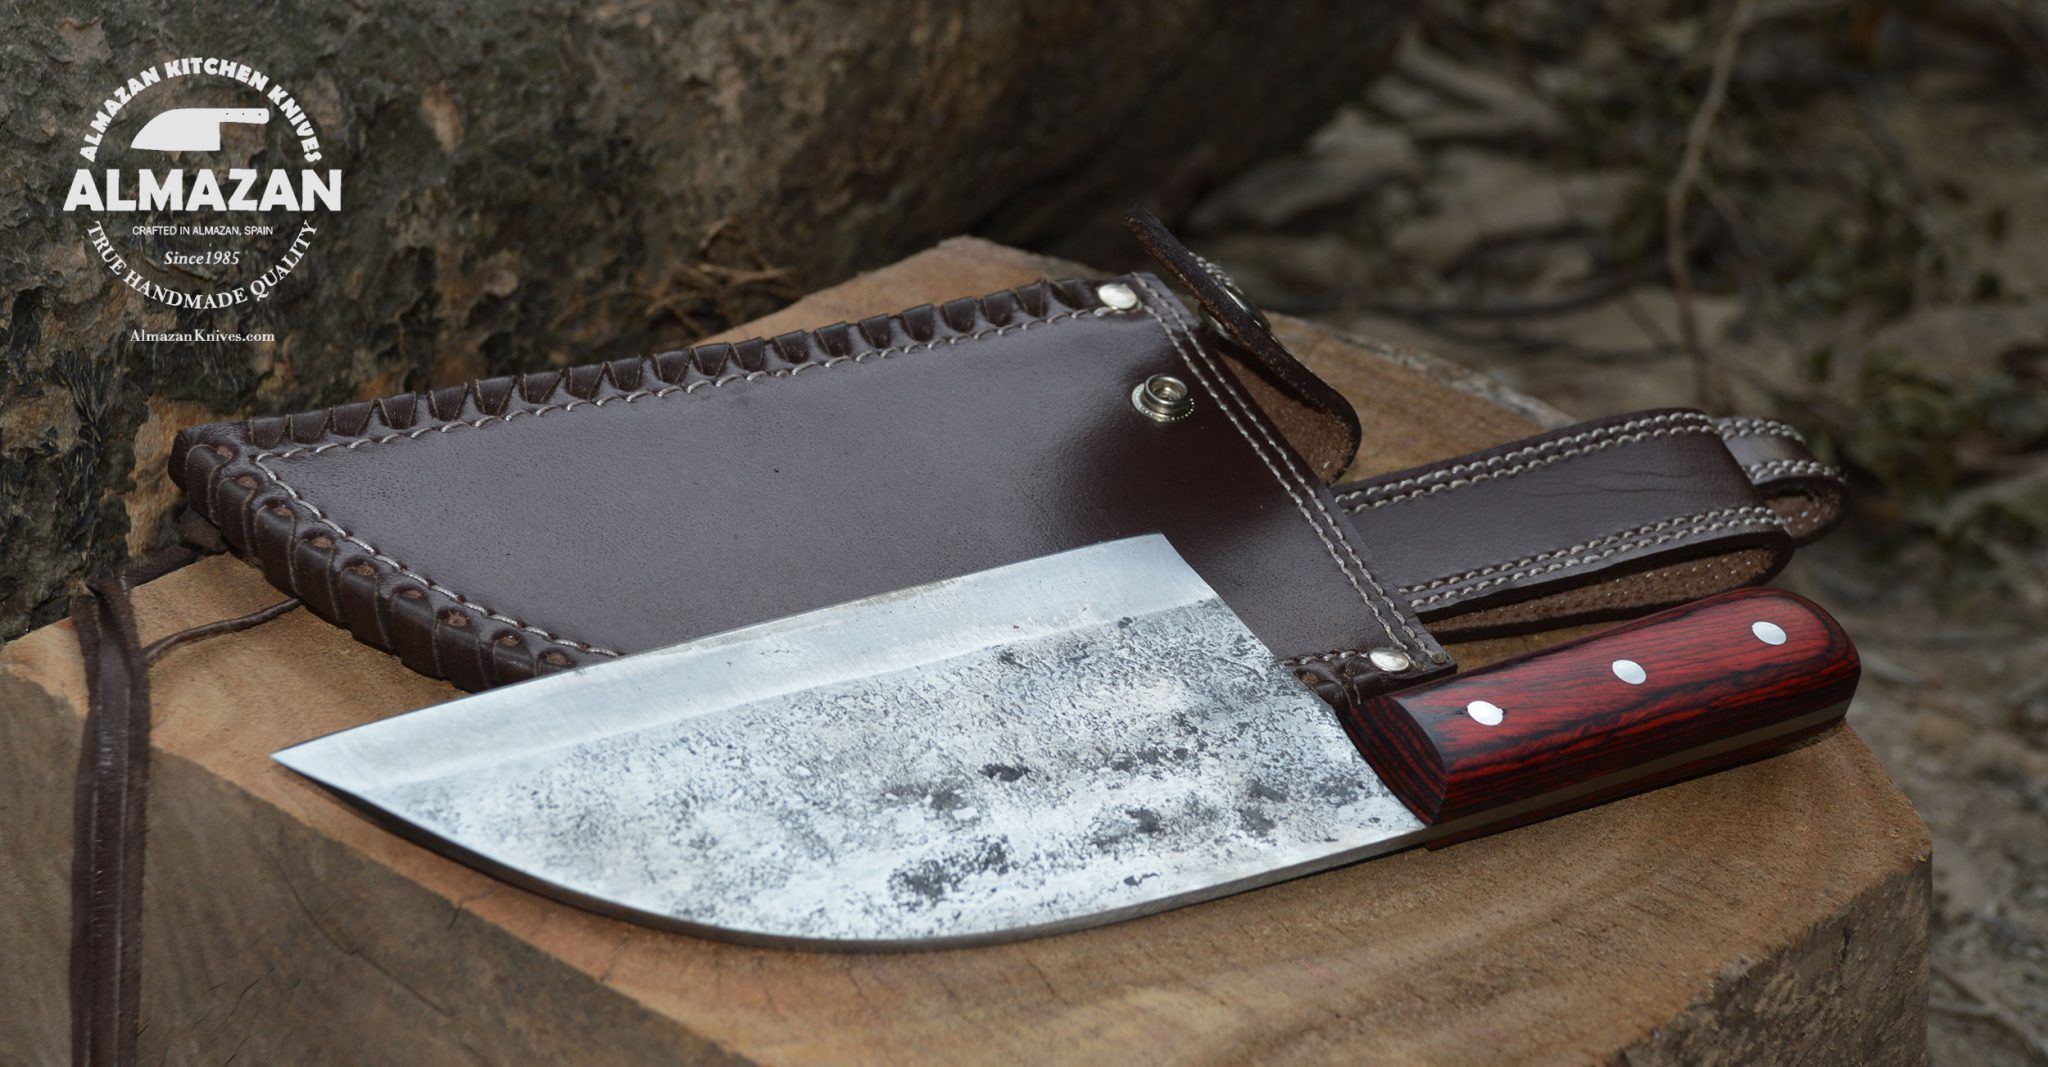 Almazan Kitchen Knife Is Hand Made With High Carbon Steel Leather Cover Included Remeber To Check Specials Sectio Kitchen Knives Knife Engraved Pocket Knives